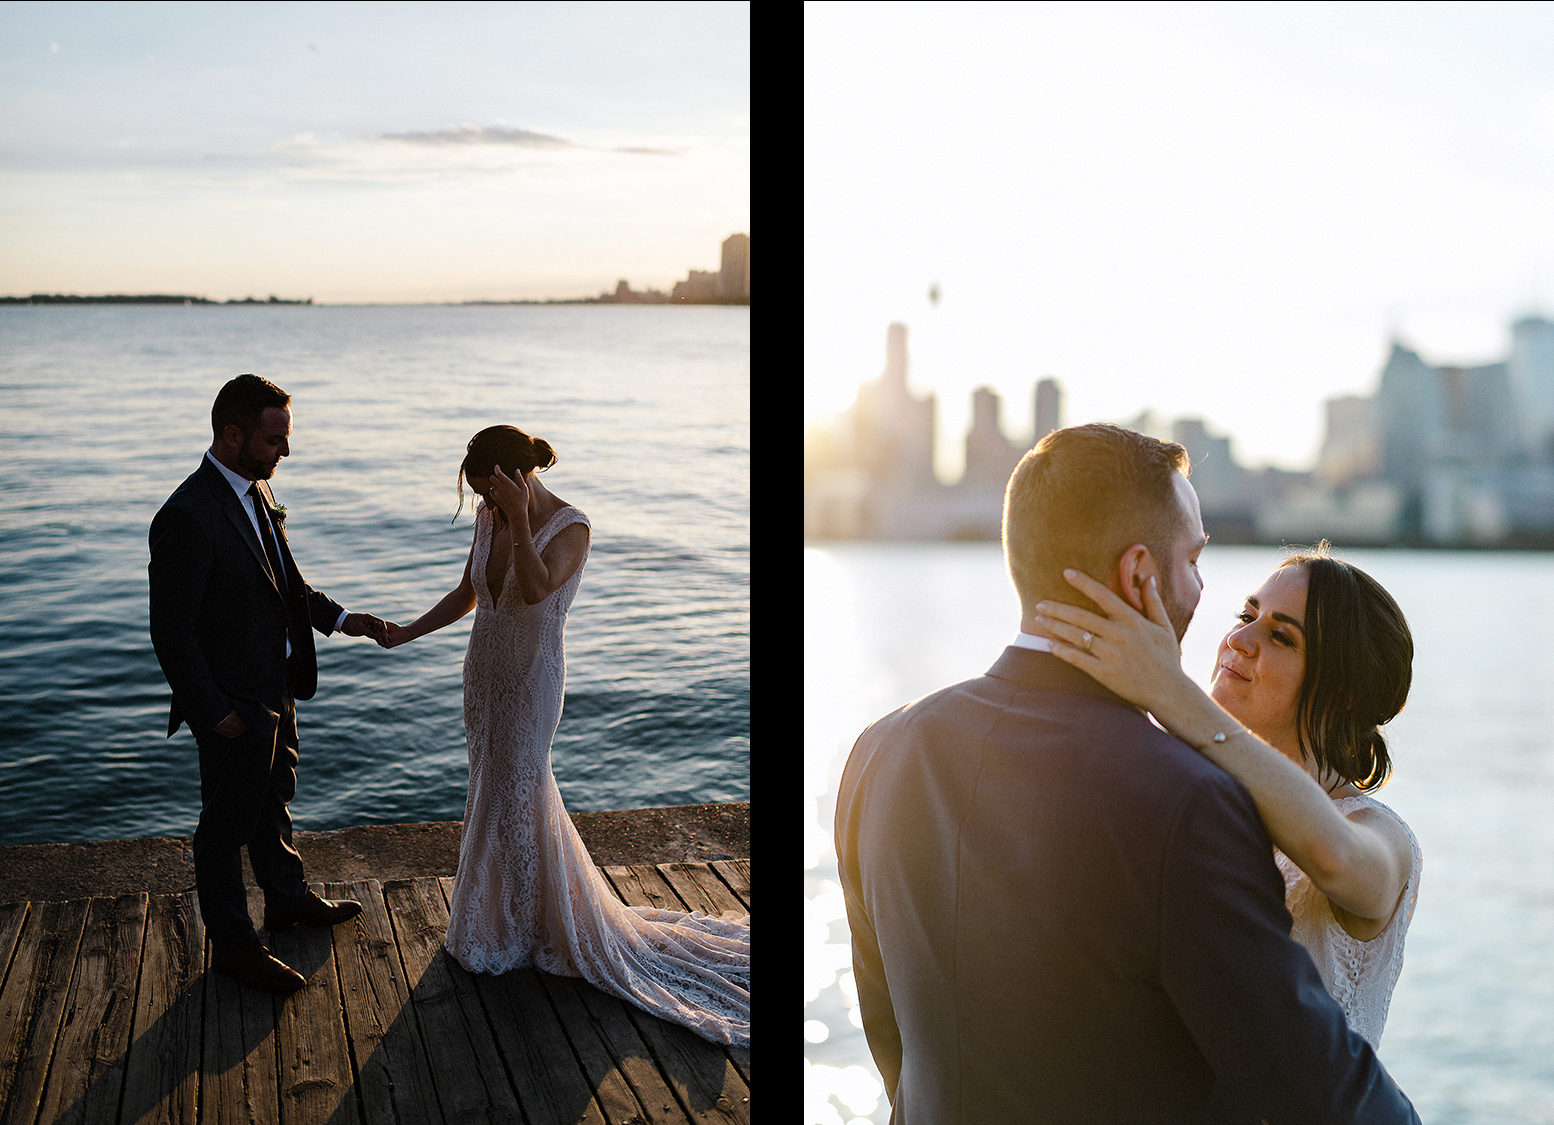 32-Best-Wedding-photographers-Toronto-NAtural-Candid-wedding-photography-Airship37-Sunset-Portrait-bride-and-veil-sunset-golden-light-toronto-skyline-portraits-candid-intimate-wedding-candid-outtake.jpg